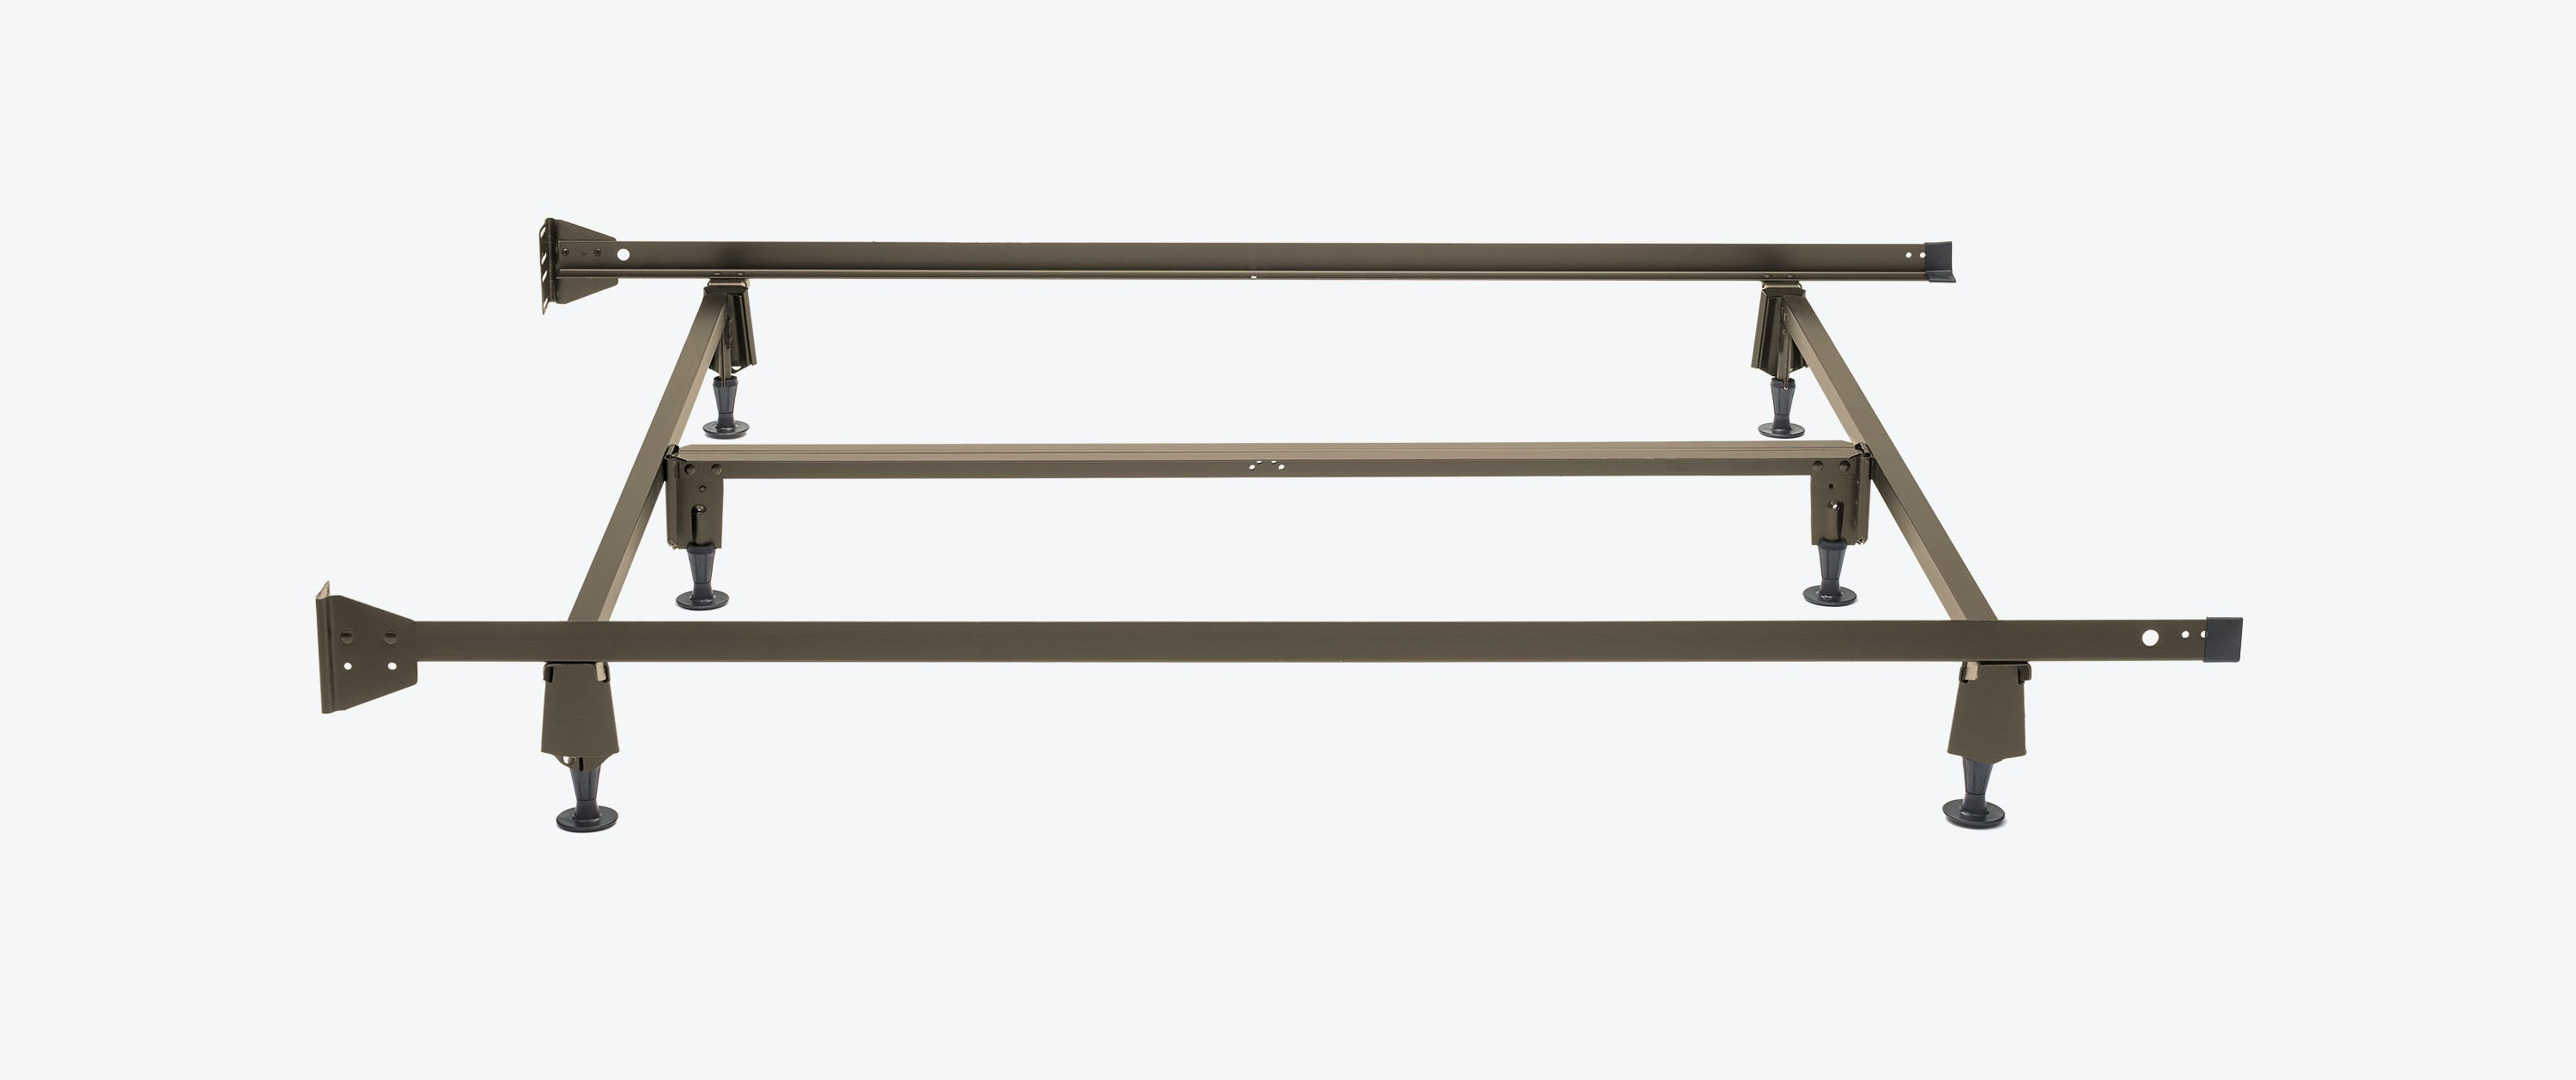 Metal Bed Frame (All Sizes: Twin to California King)   Casper®